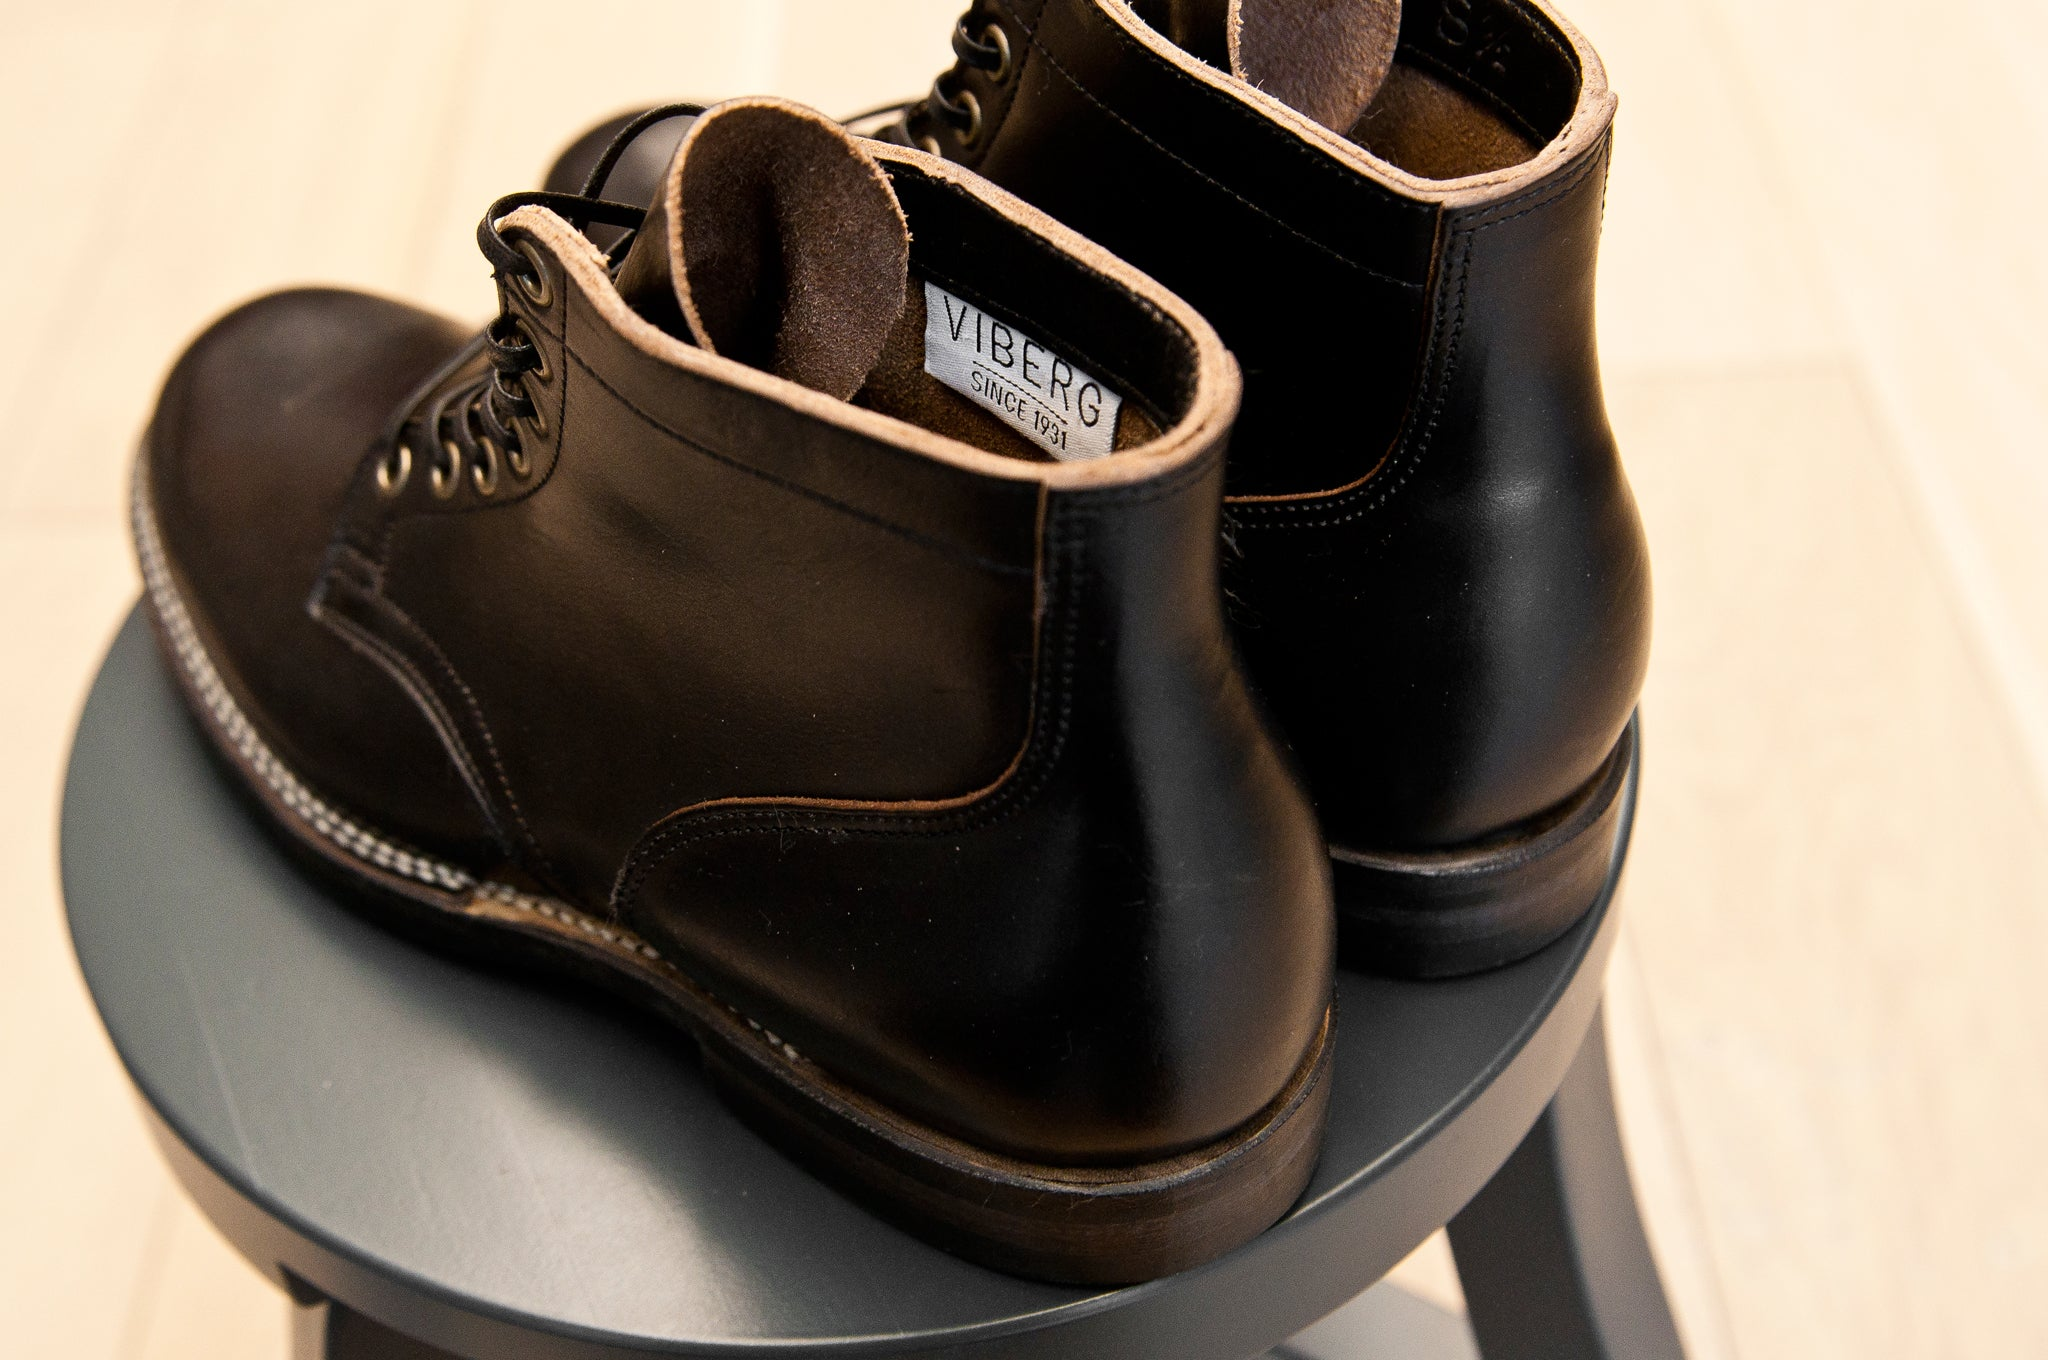 Viberg Black Chromexcel Service Boot at shoplosfound 4